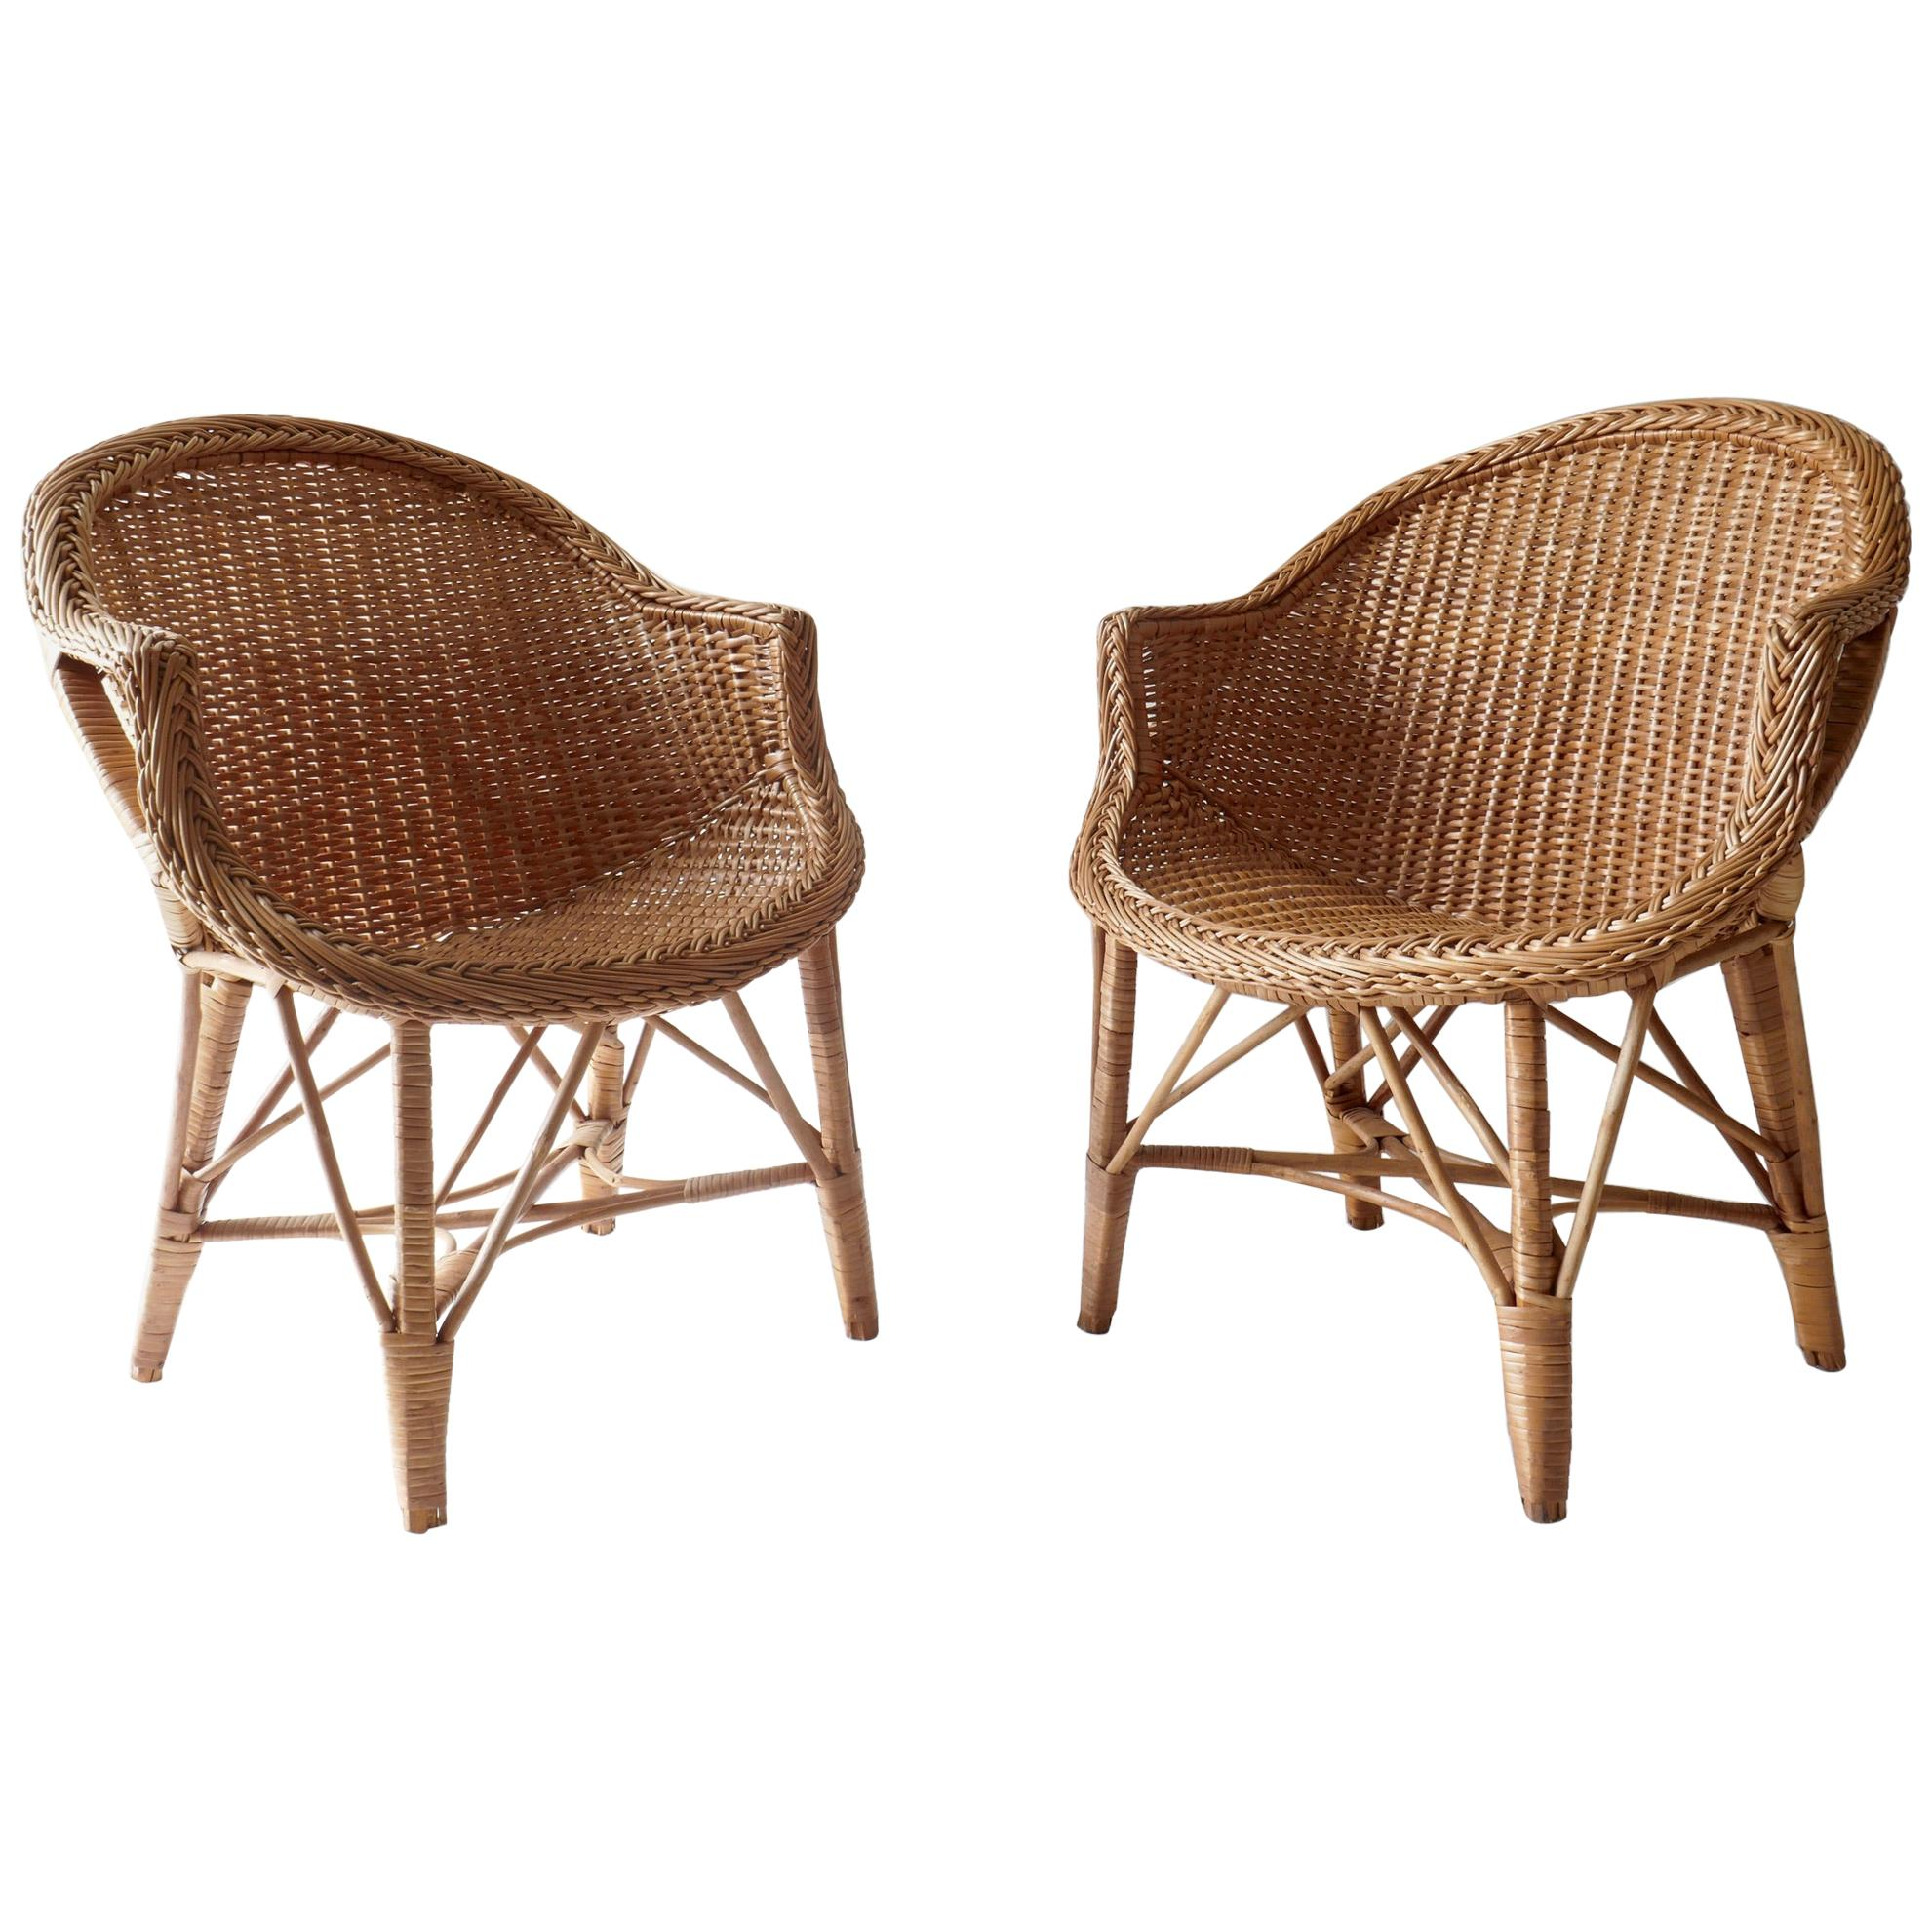 Pair of Two Rattan Chairs, 1960s